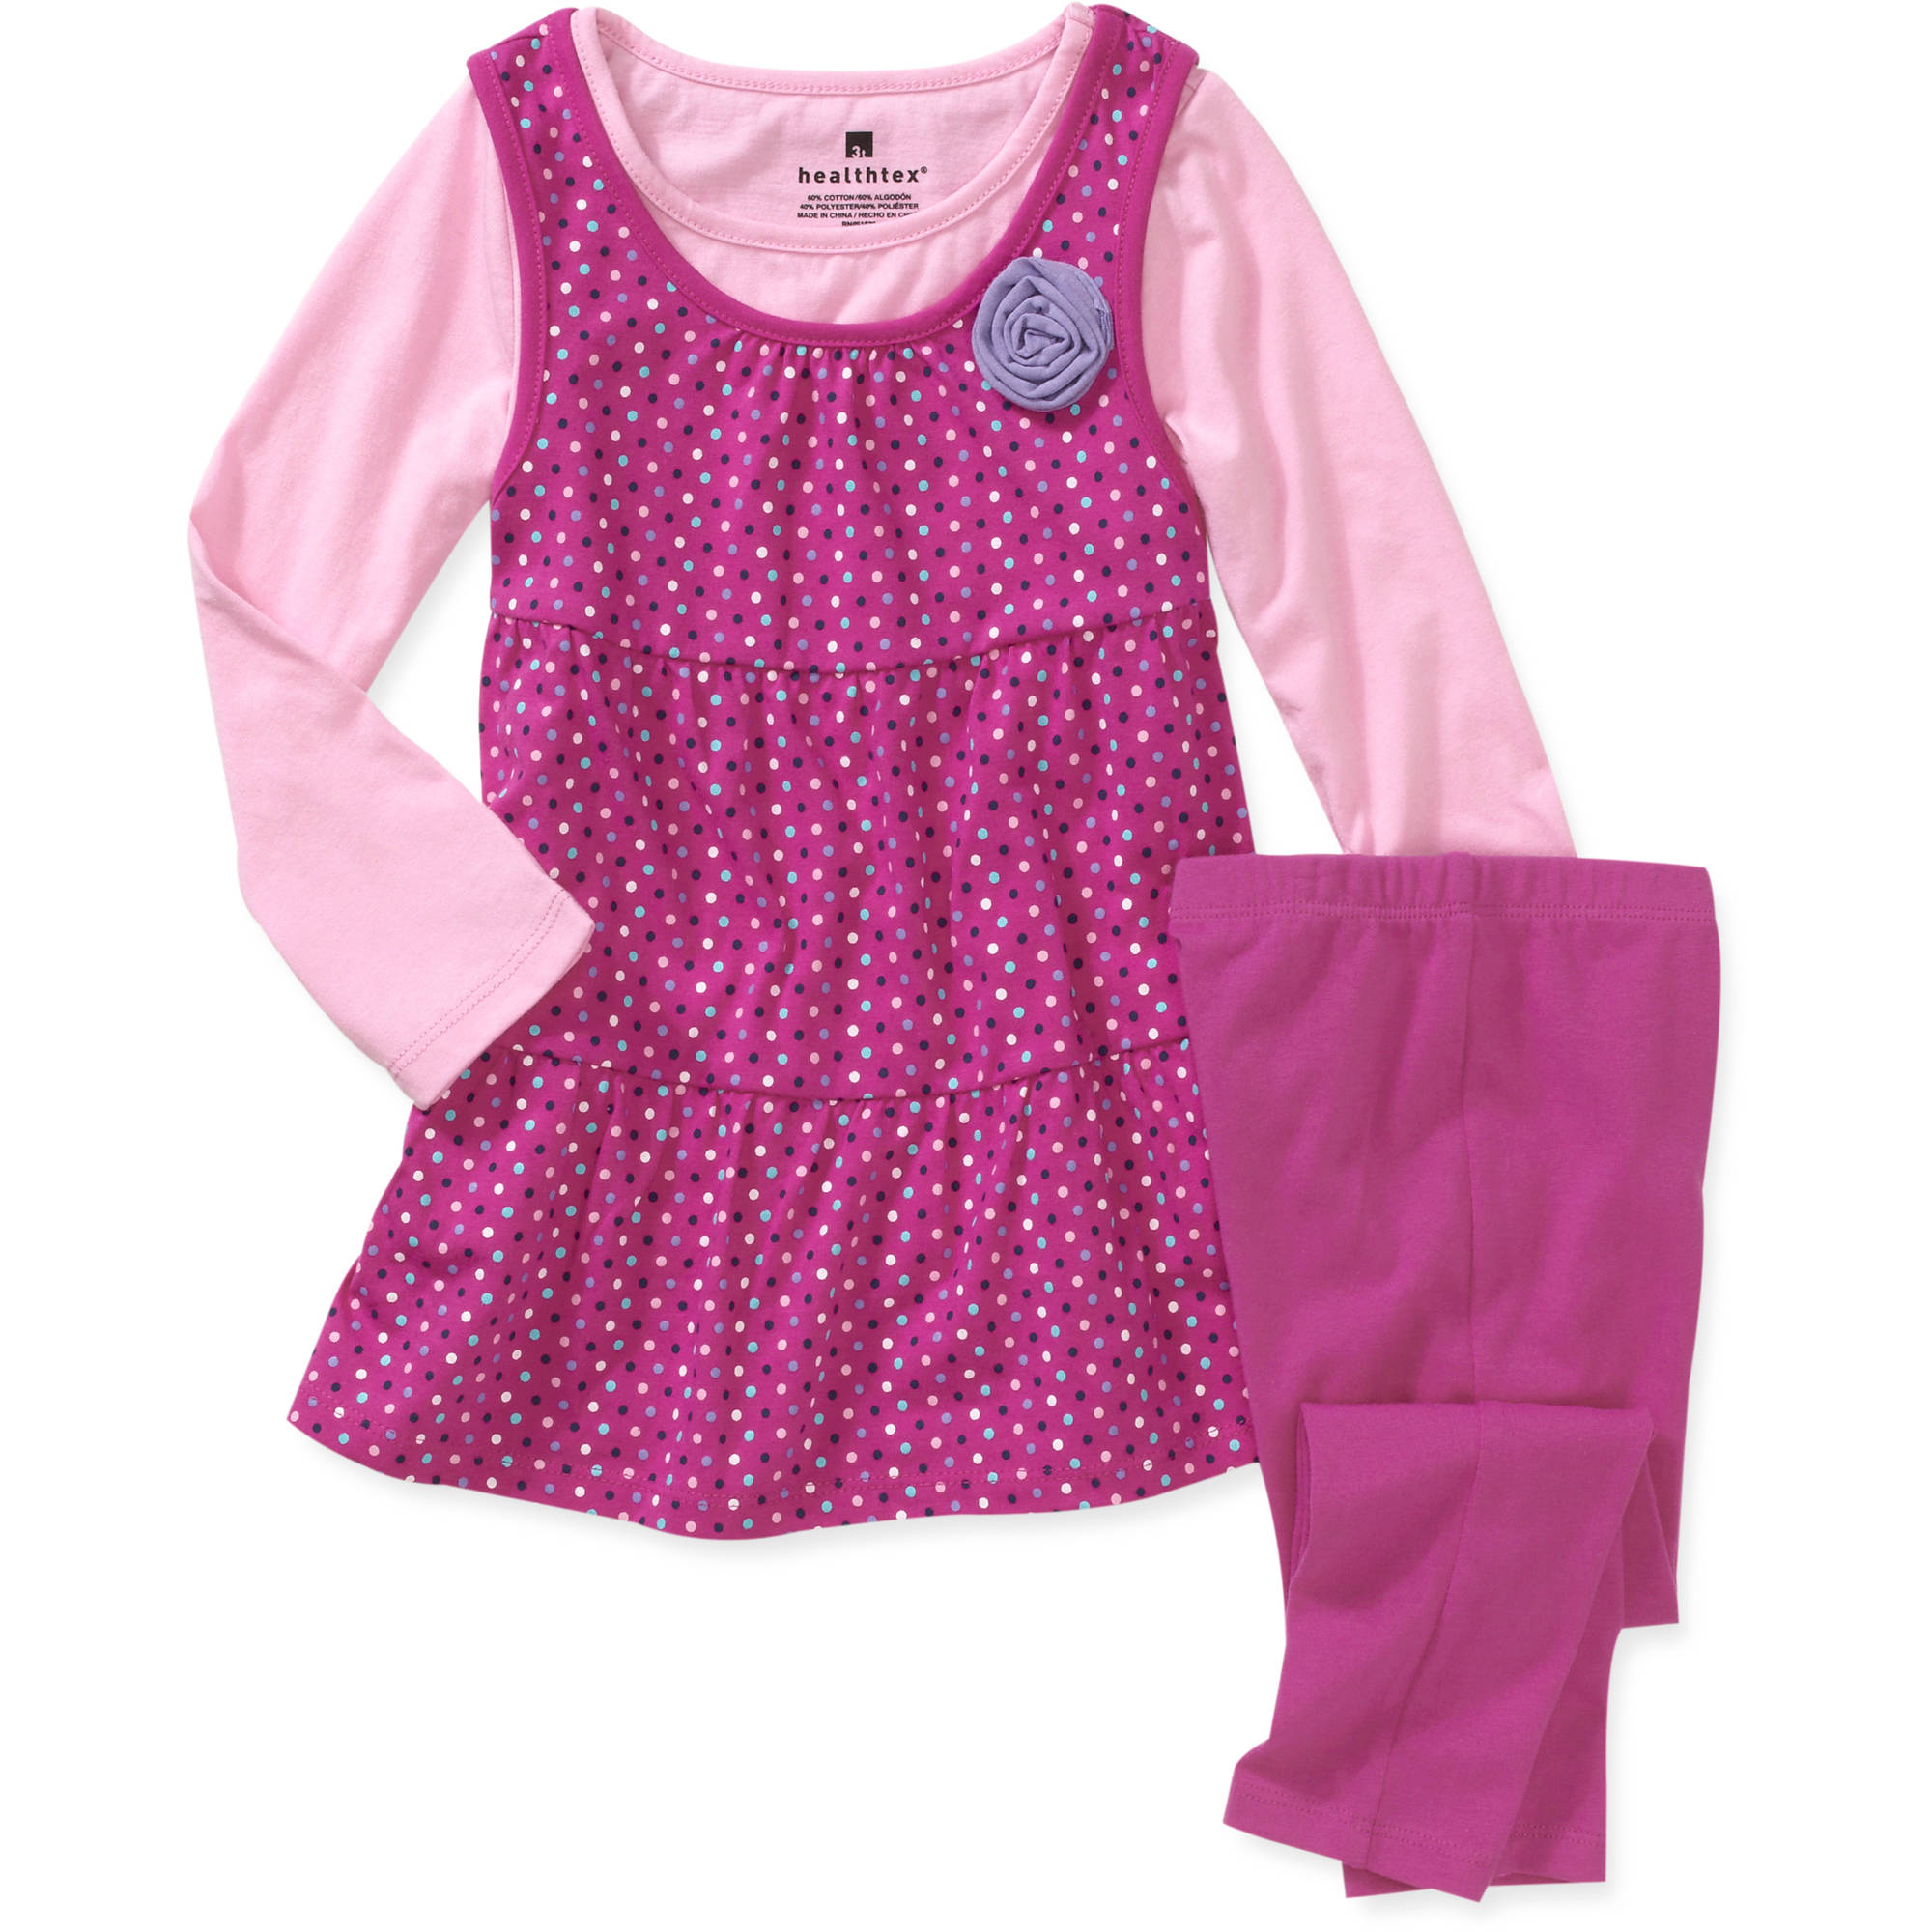 Healthtex Baby Girls' 3-Piece Dot Jumper, Tee and Legging Set